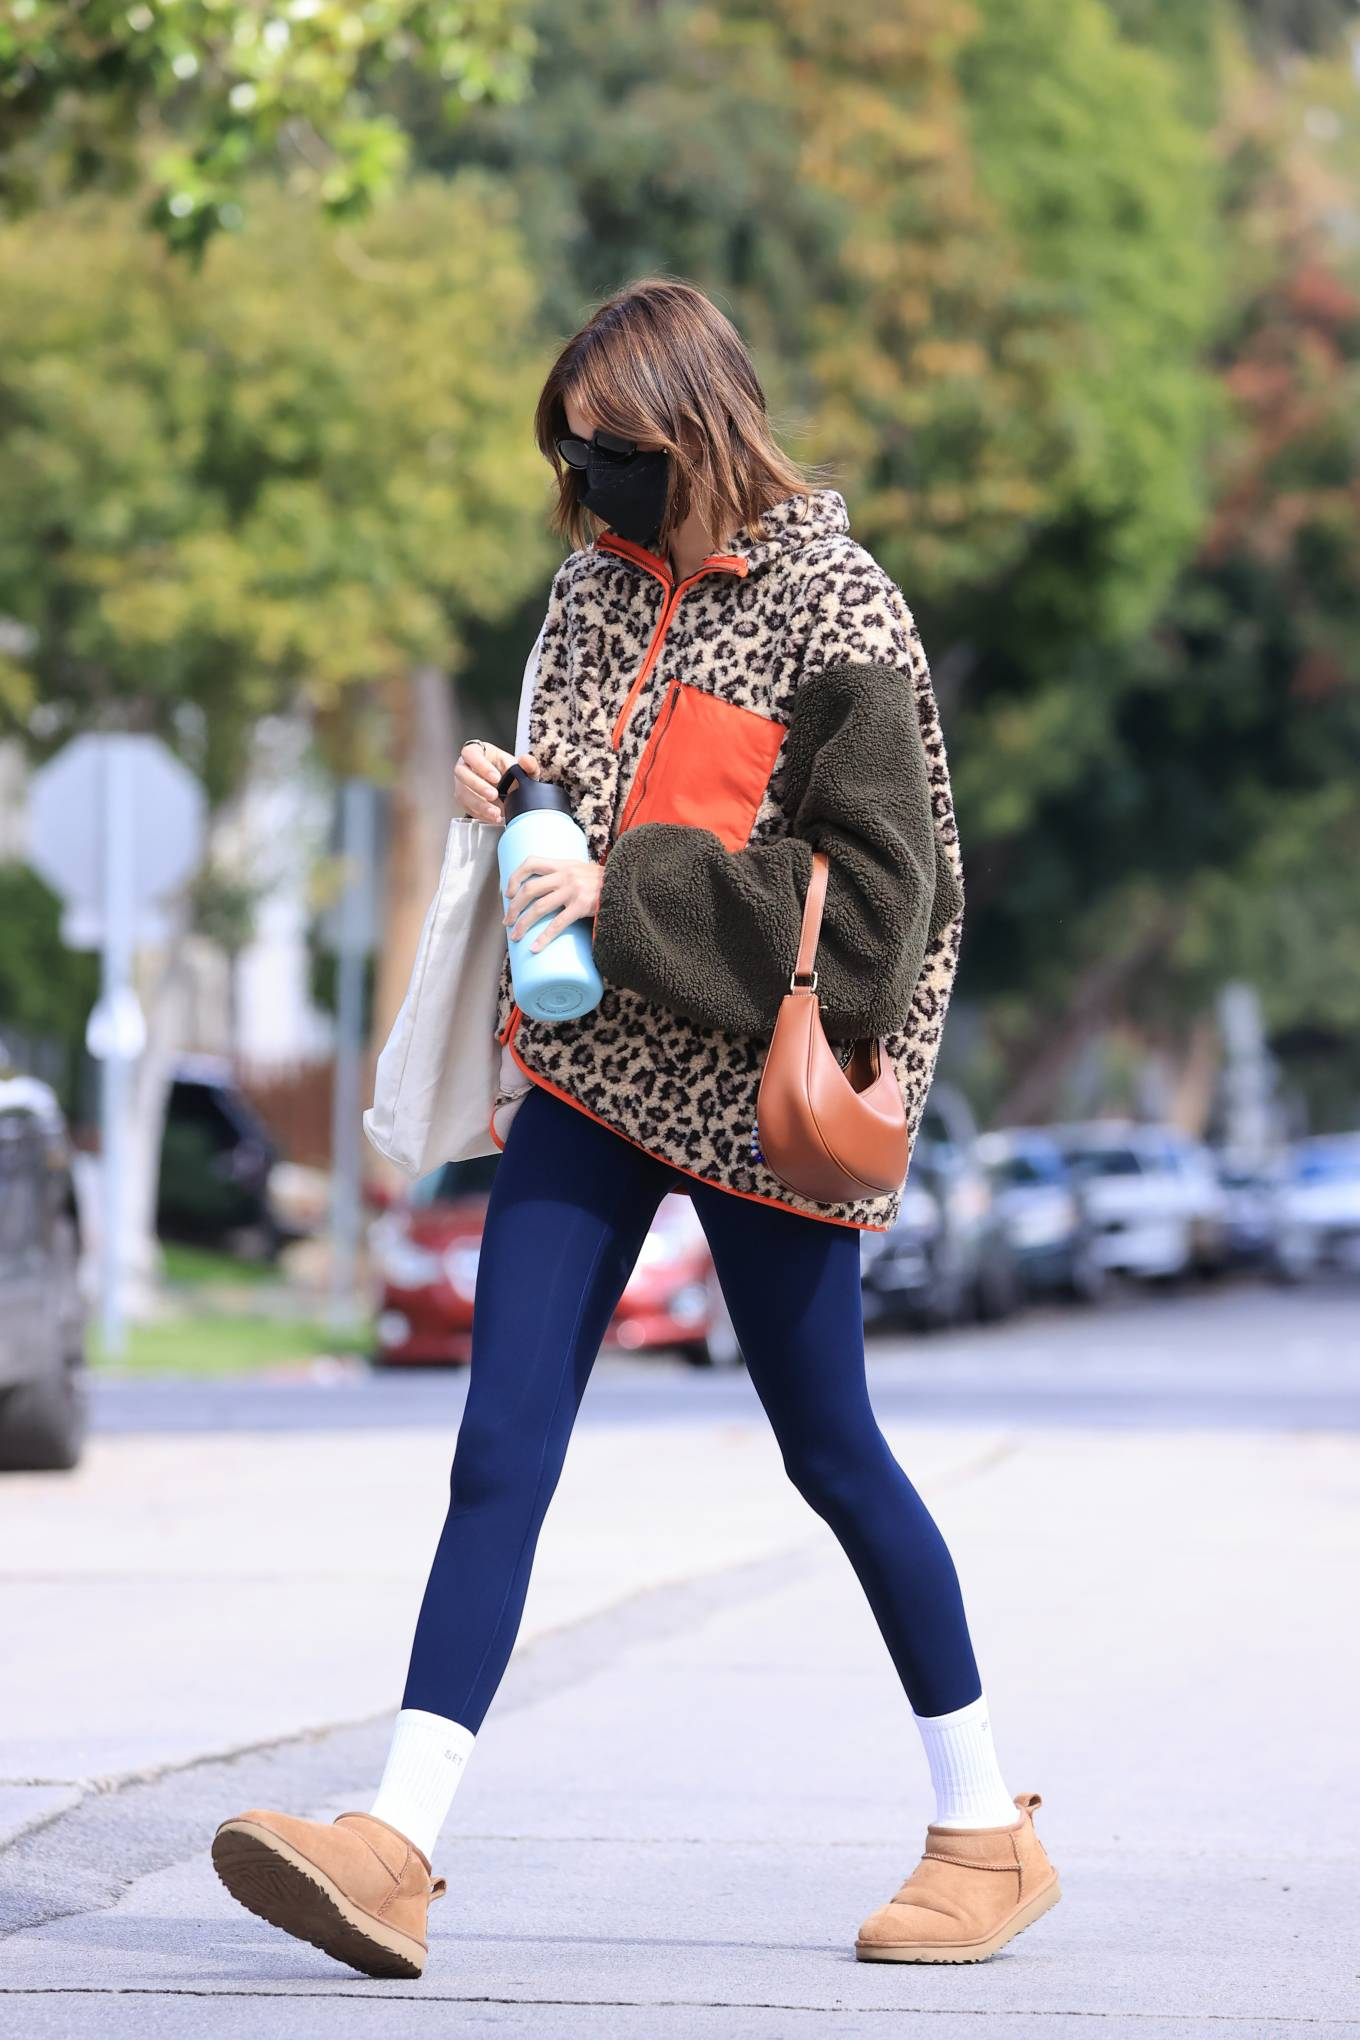 Kaia Gerber rocking a oversized leopard print jacket with a fleece fabric, full sleeves and drop shoulder